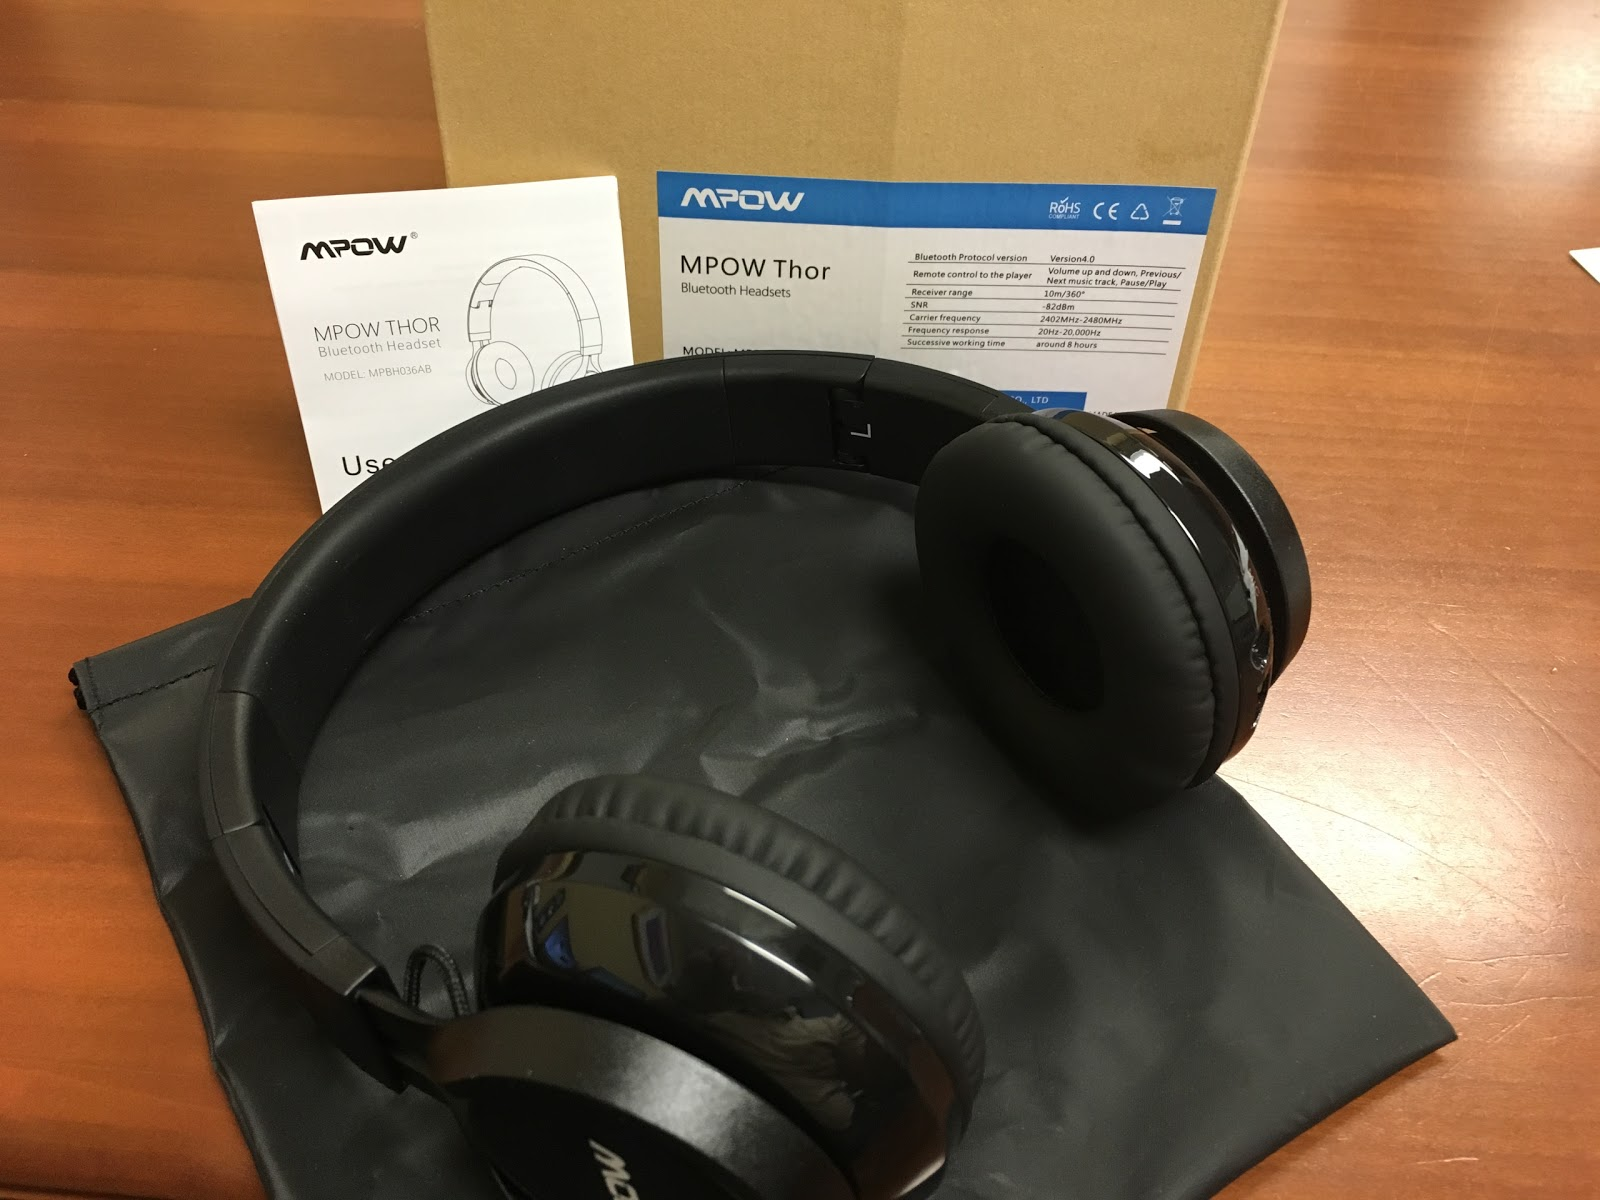 Review]Mpow Thor headphones are a decent option for the